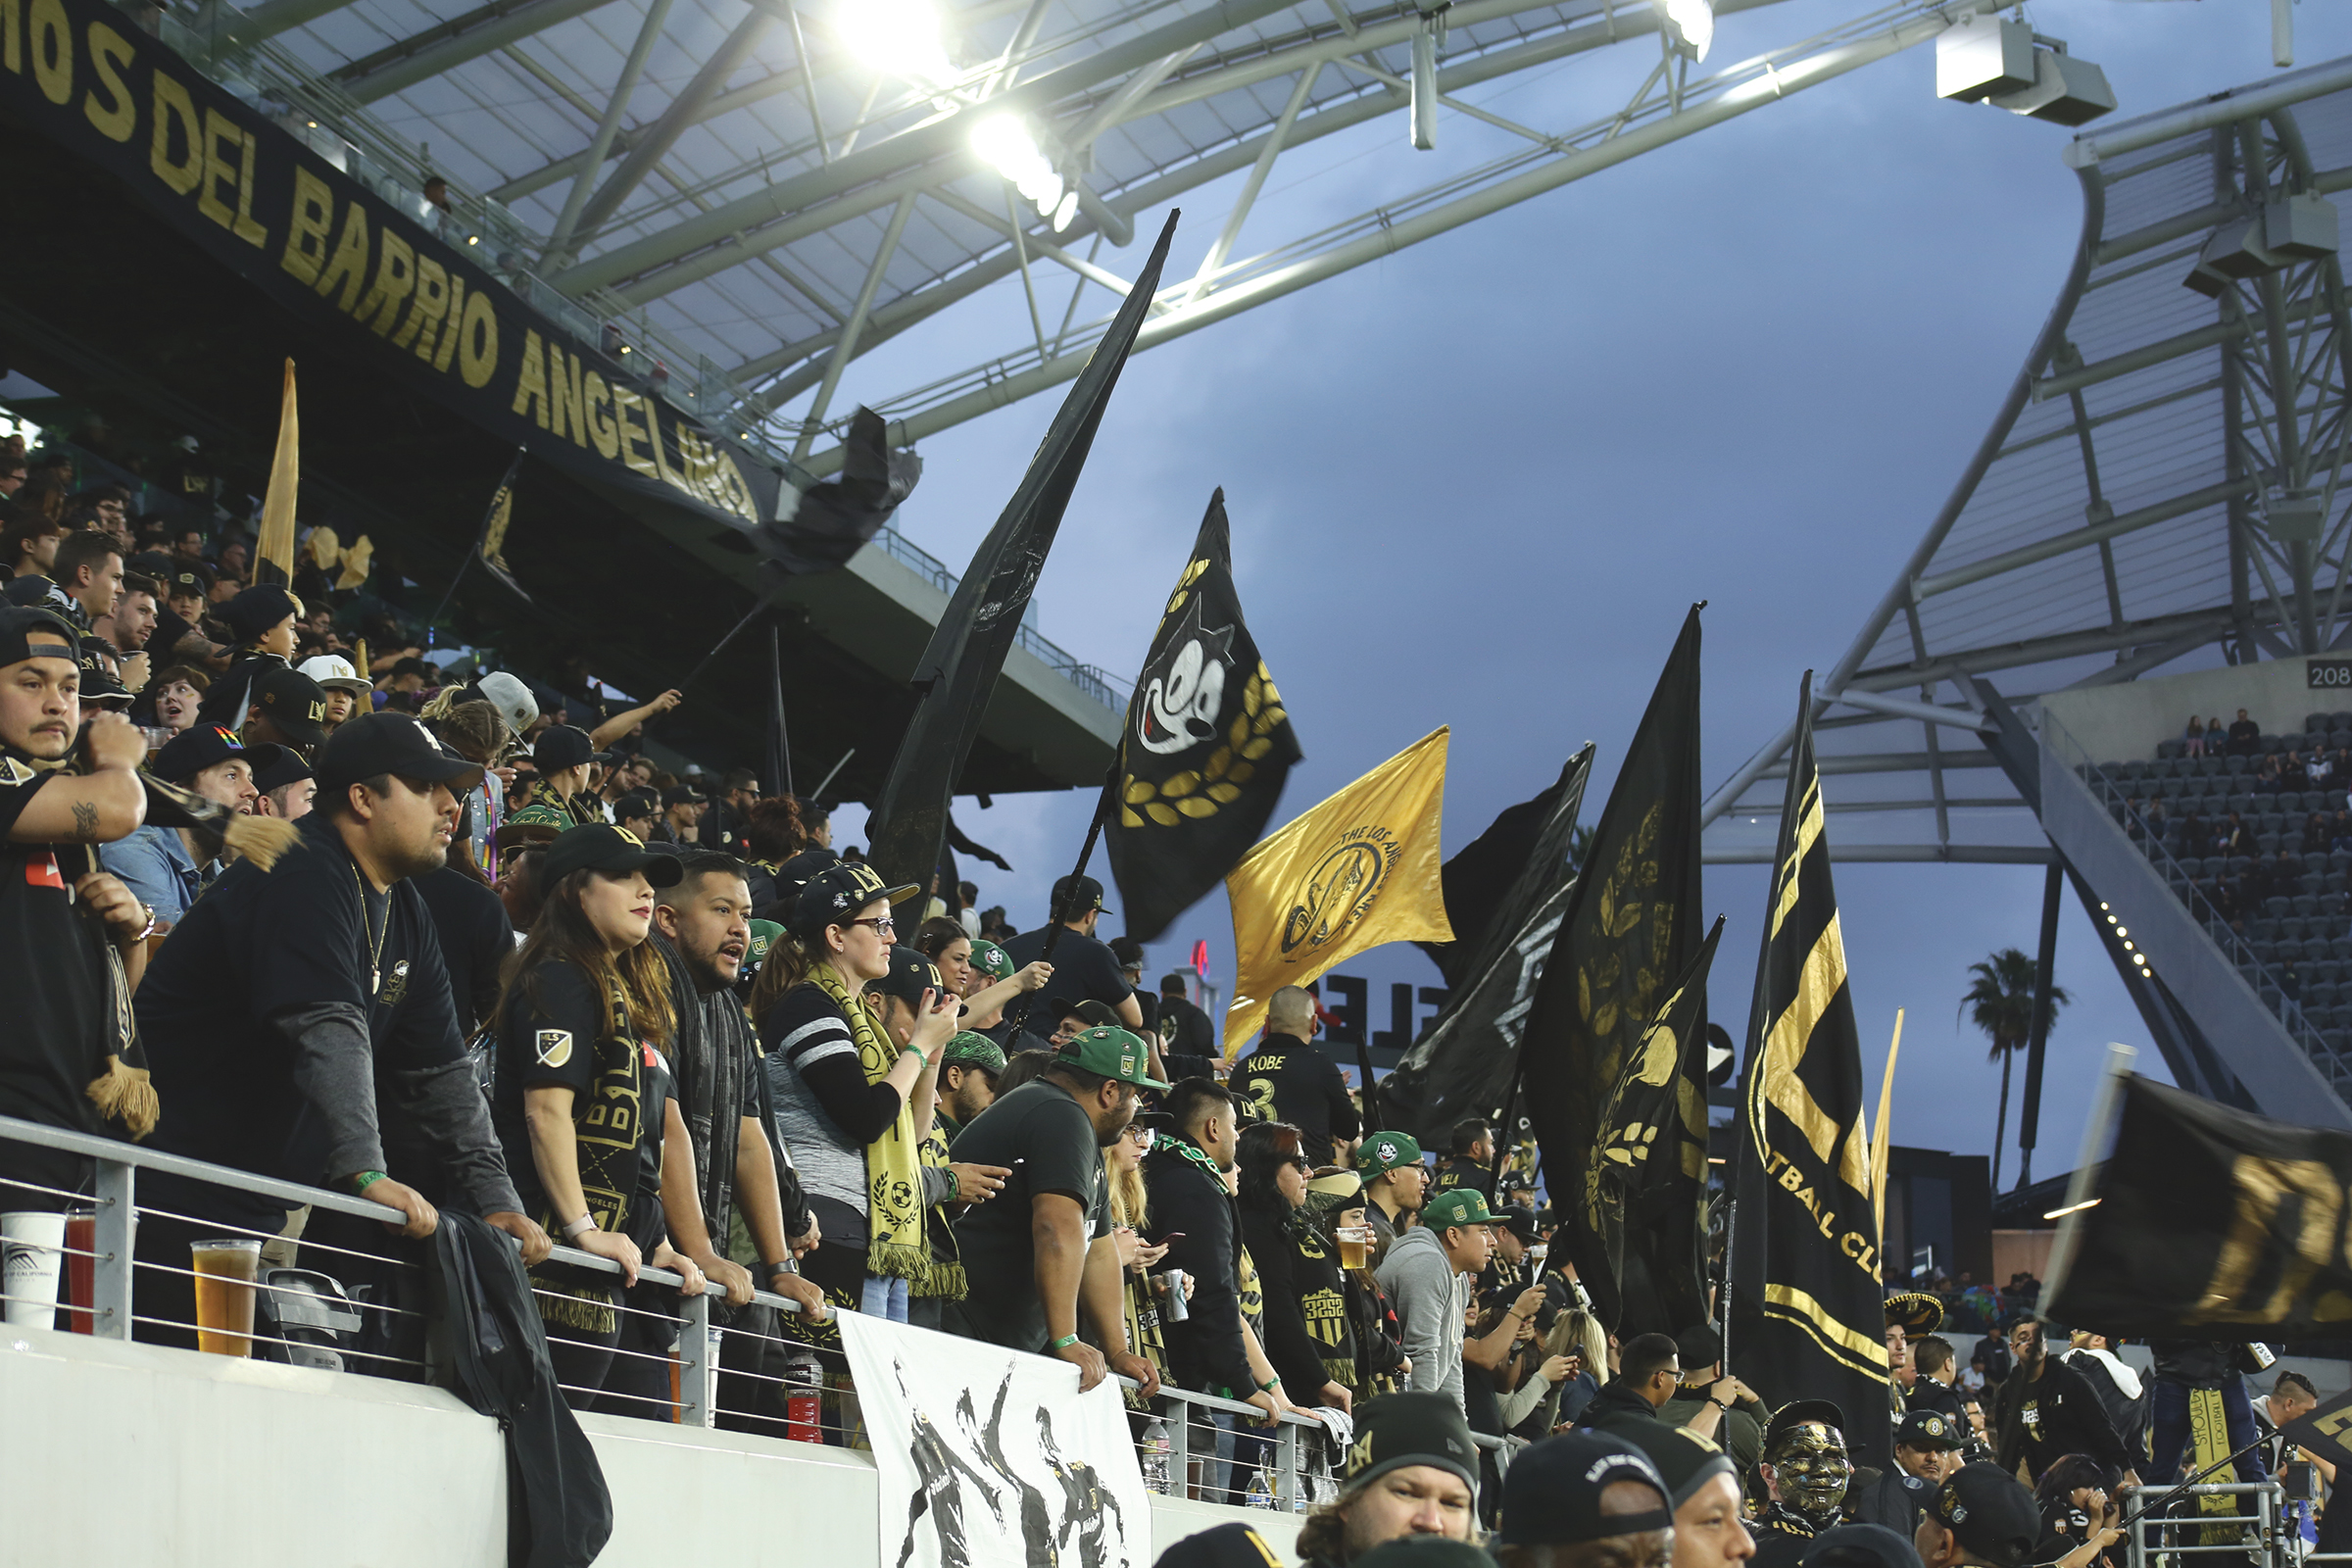 3252 fans cheering on LAFC during their match-up with RSL on March 23. (Photo Credit: Mas Shaygan)